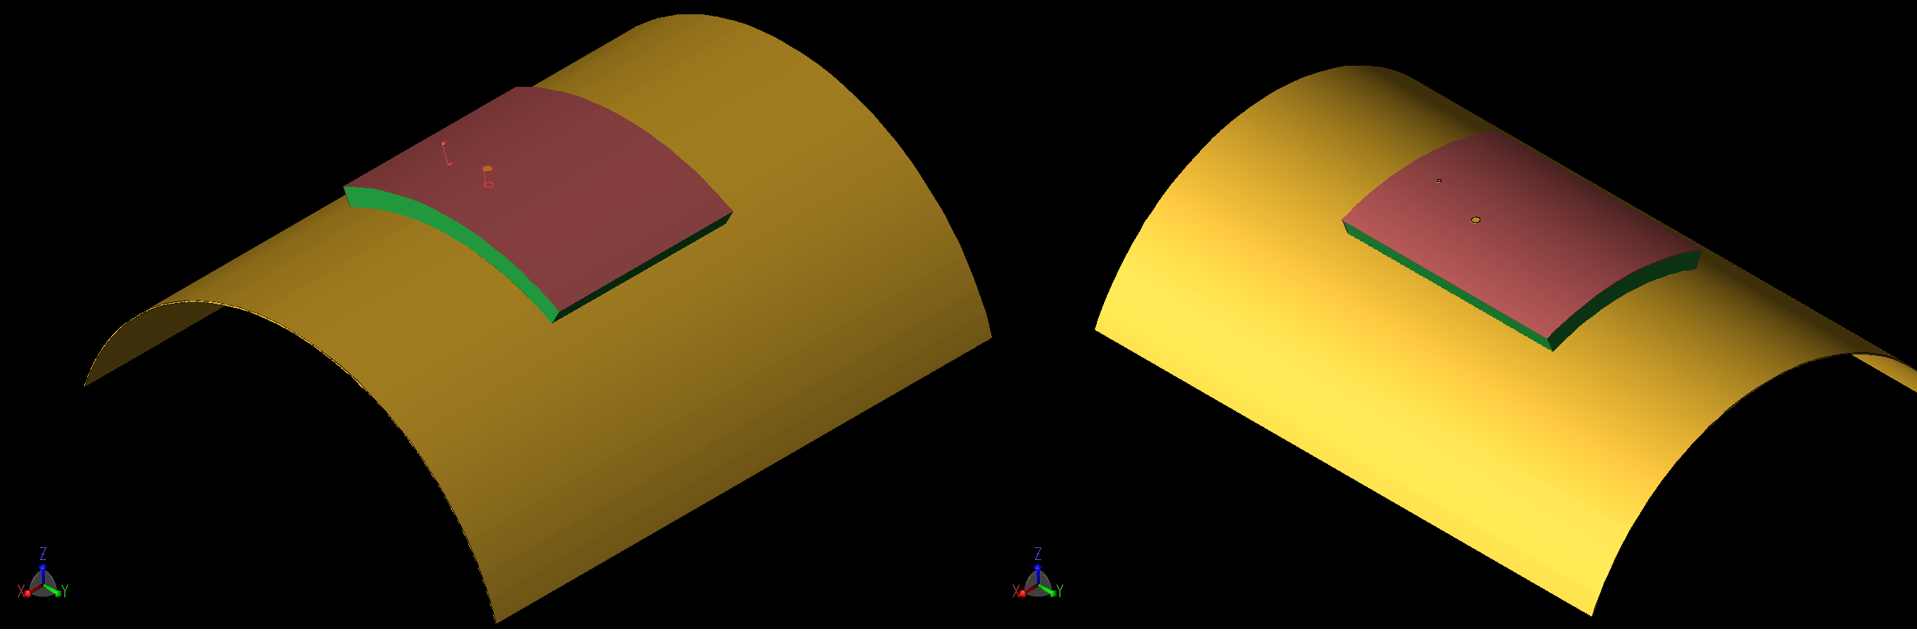 Figure 7: The patch is shown in a curved configuration where the curve radius is 40 mm. At the left (7a) the curvature is around the X axis while at the right (7b) it is around the Y axis. Similar geometries were simulated for a curvature of 80 mm radius.